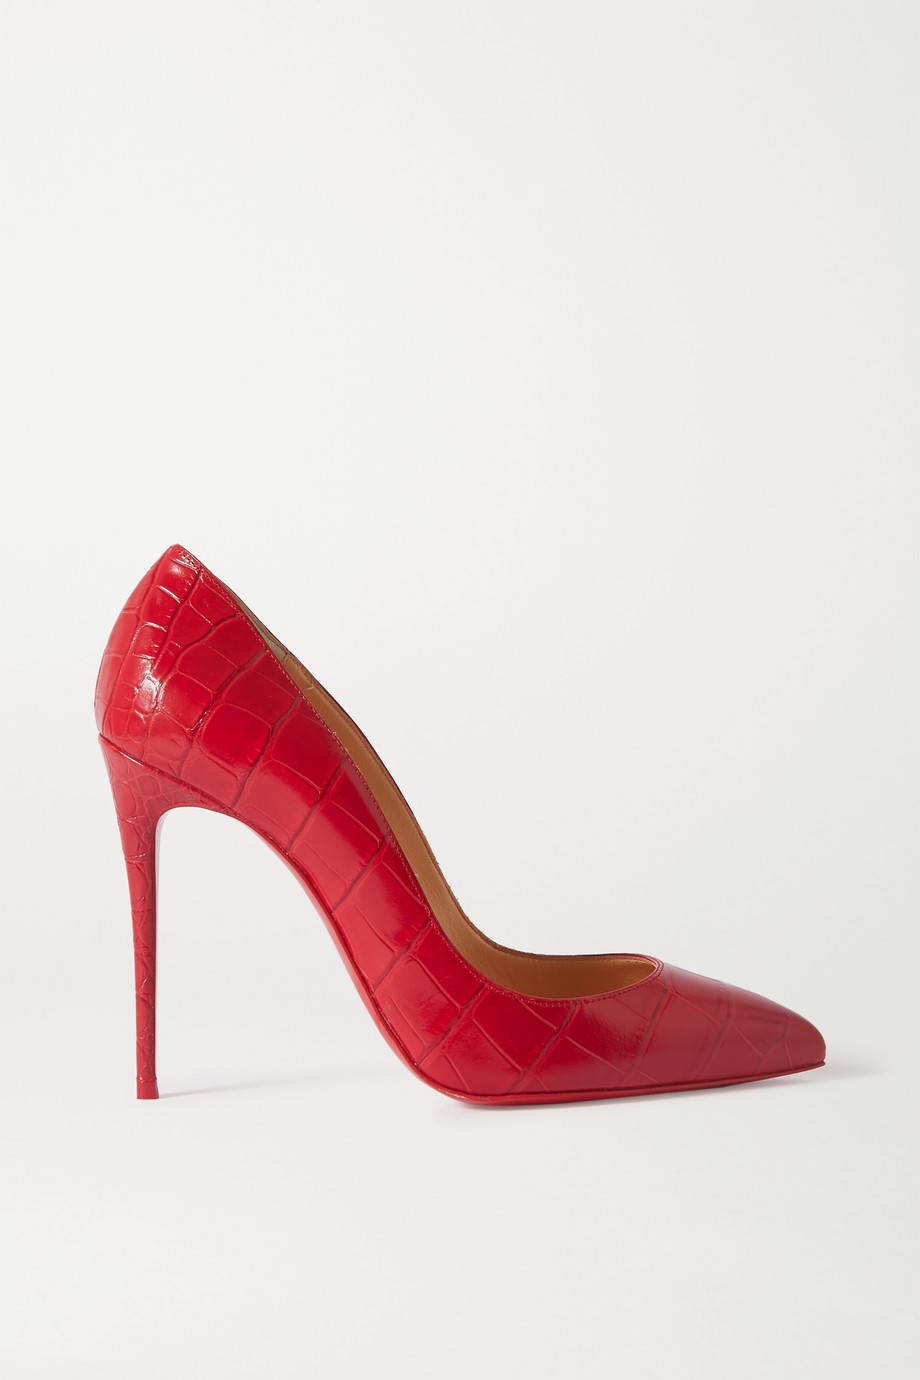 Christian Louboutin Pigalle Follies 100 croc-embossed leather pumps